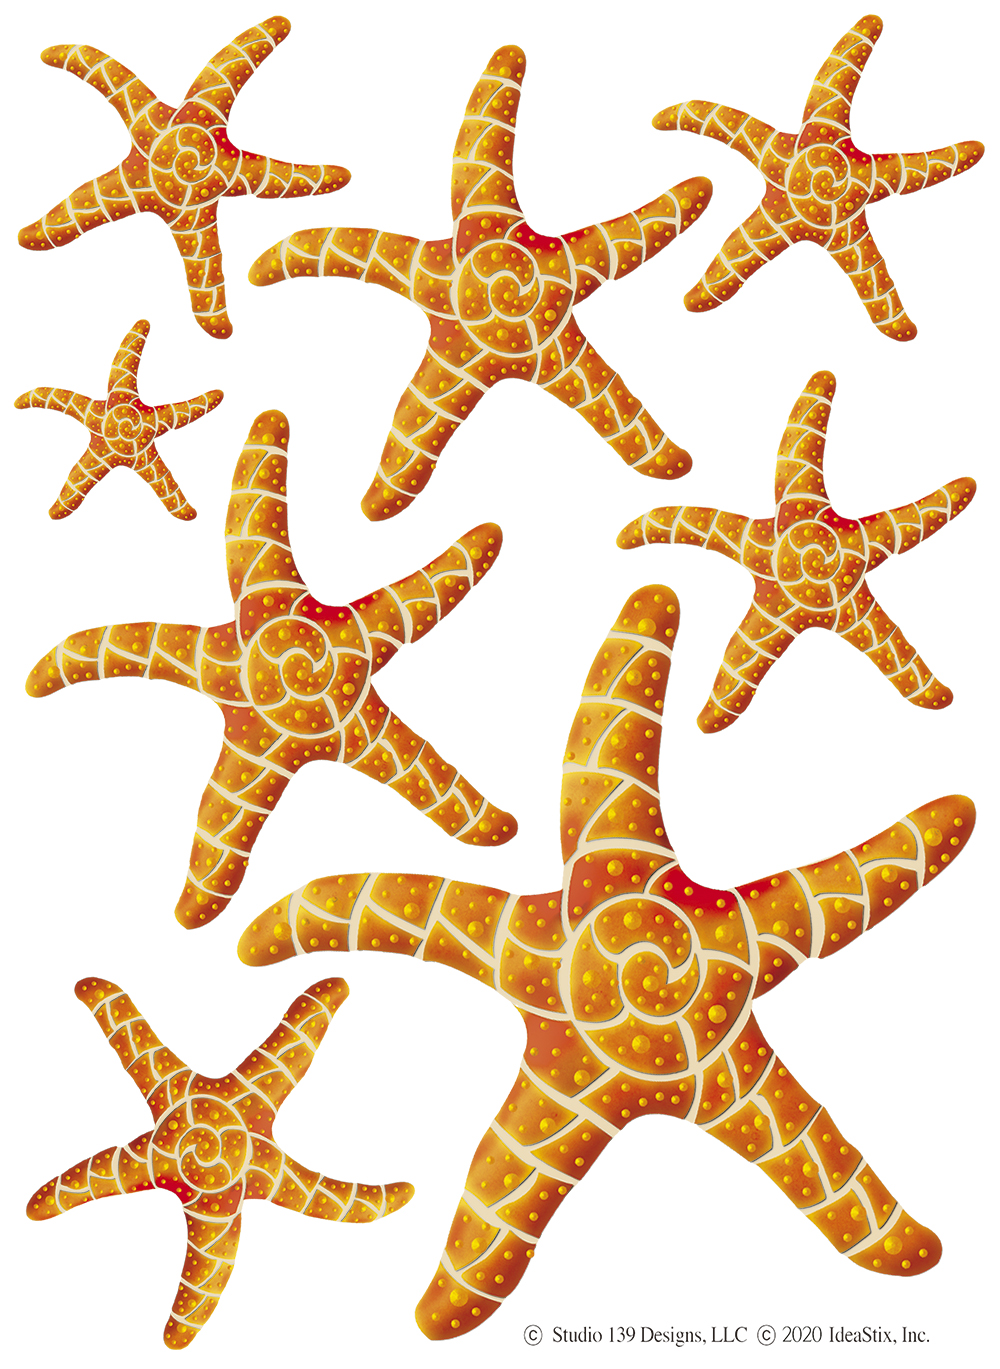 IdeaStix Starfish 2-Sheet Accents - Original Premium Peel and Stick D??cor